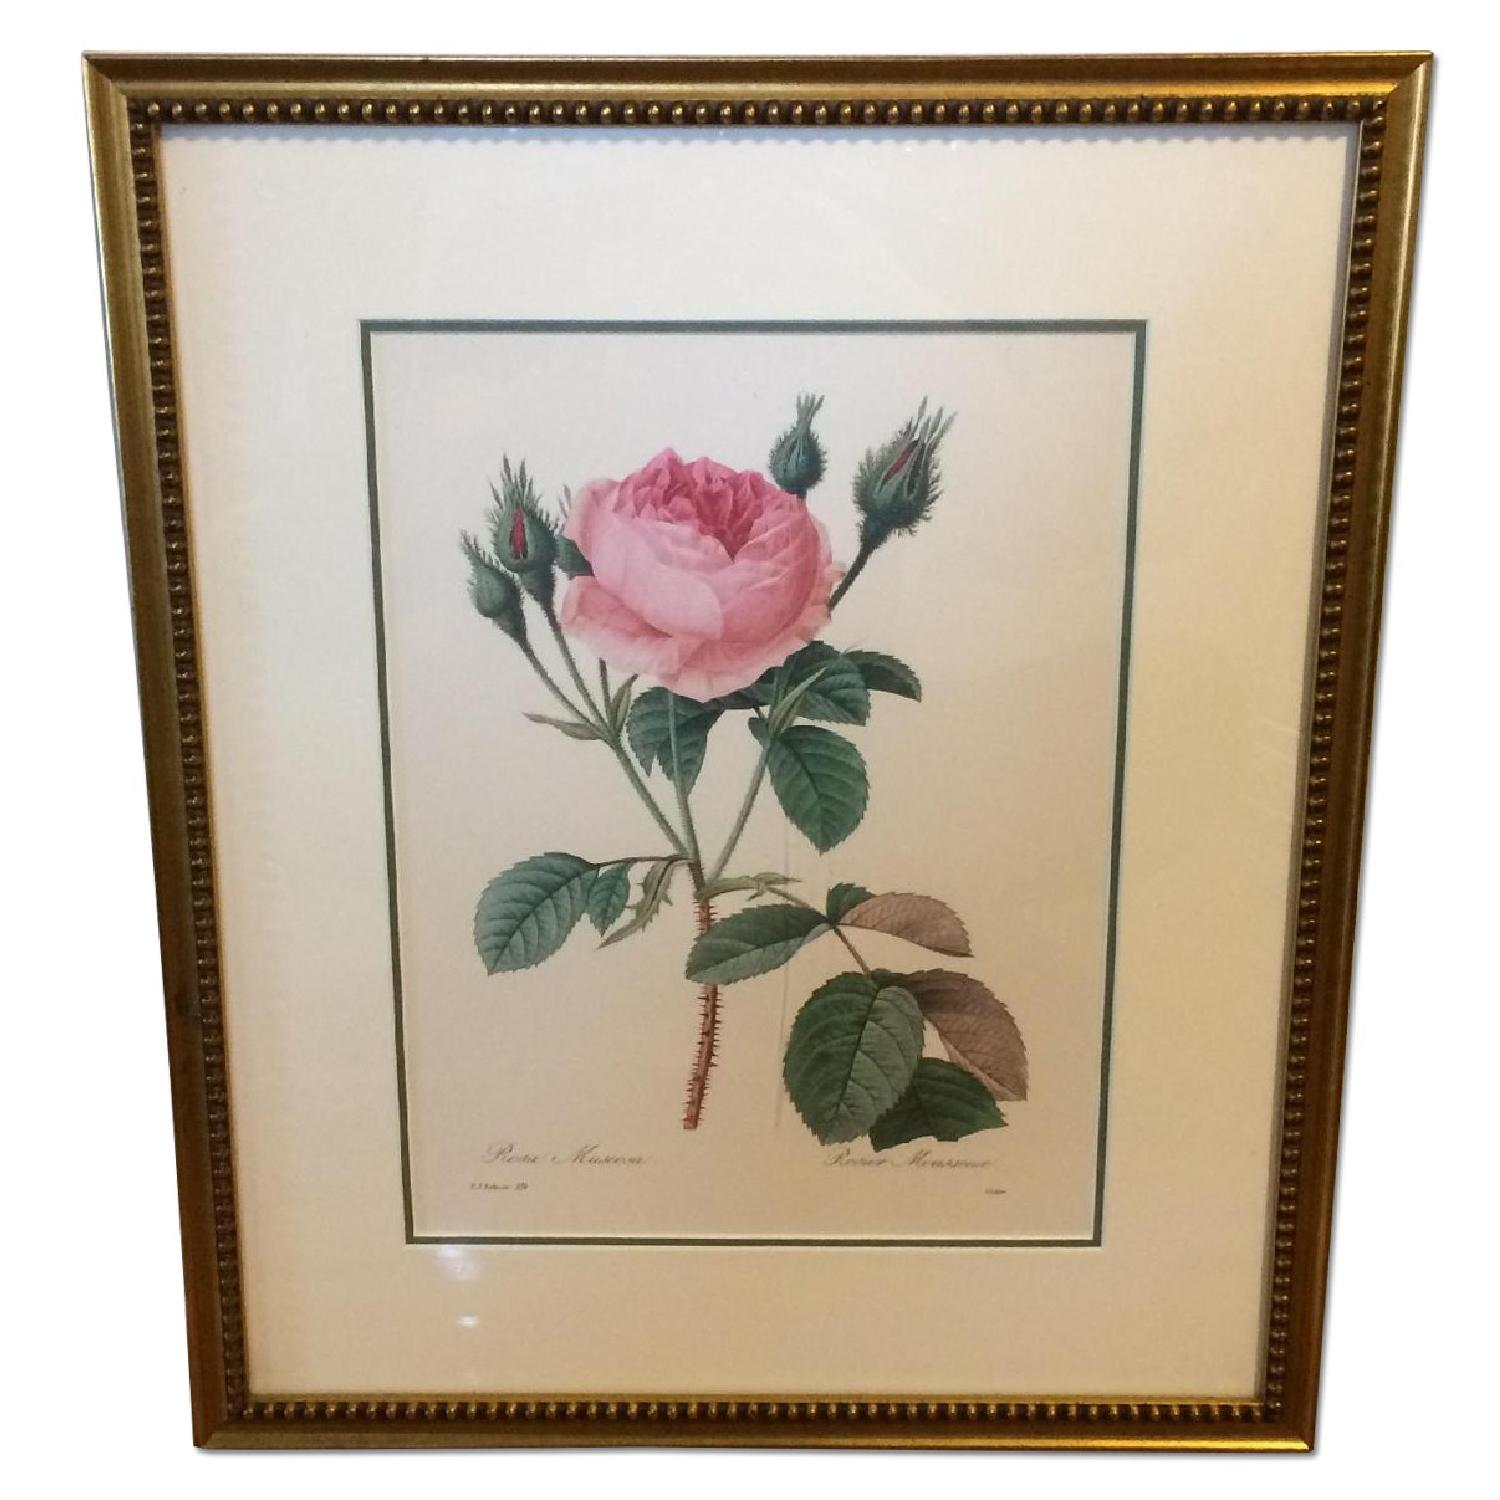 Pierre Joseph Redoute Framed Floral Lithograph - image-0